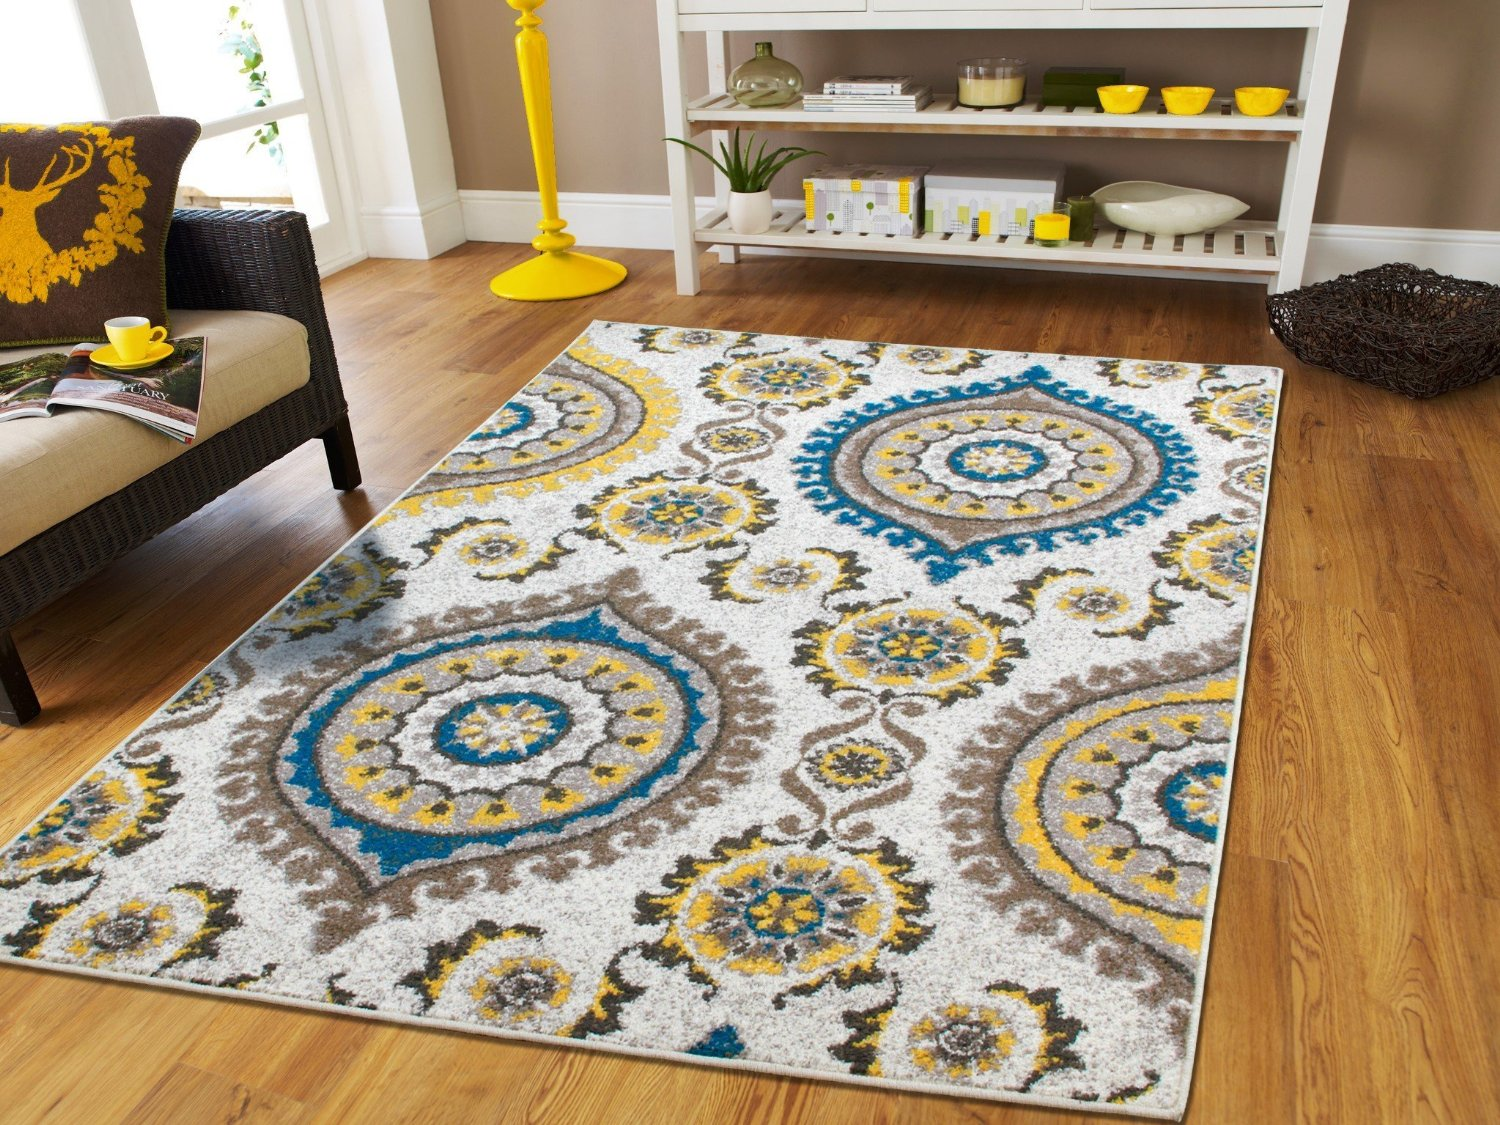 Beau Living Room Rugs On Clearance 8x10 Yellow Gray Blue Brown Contemporary Rugs  For Living Room 8